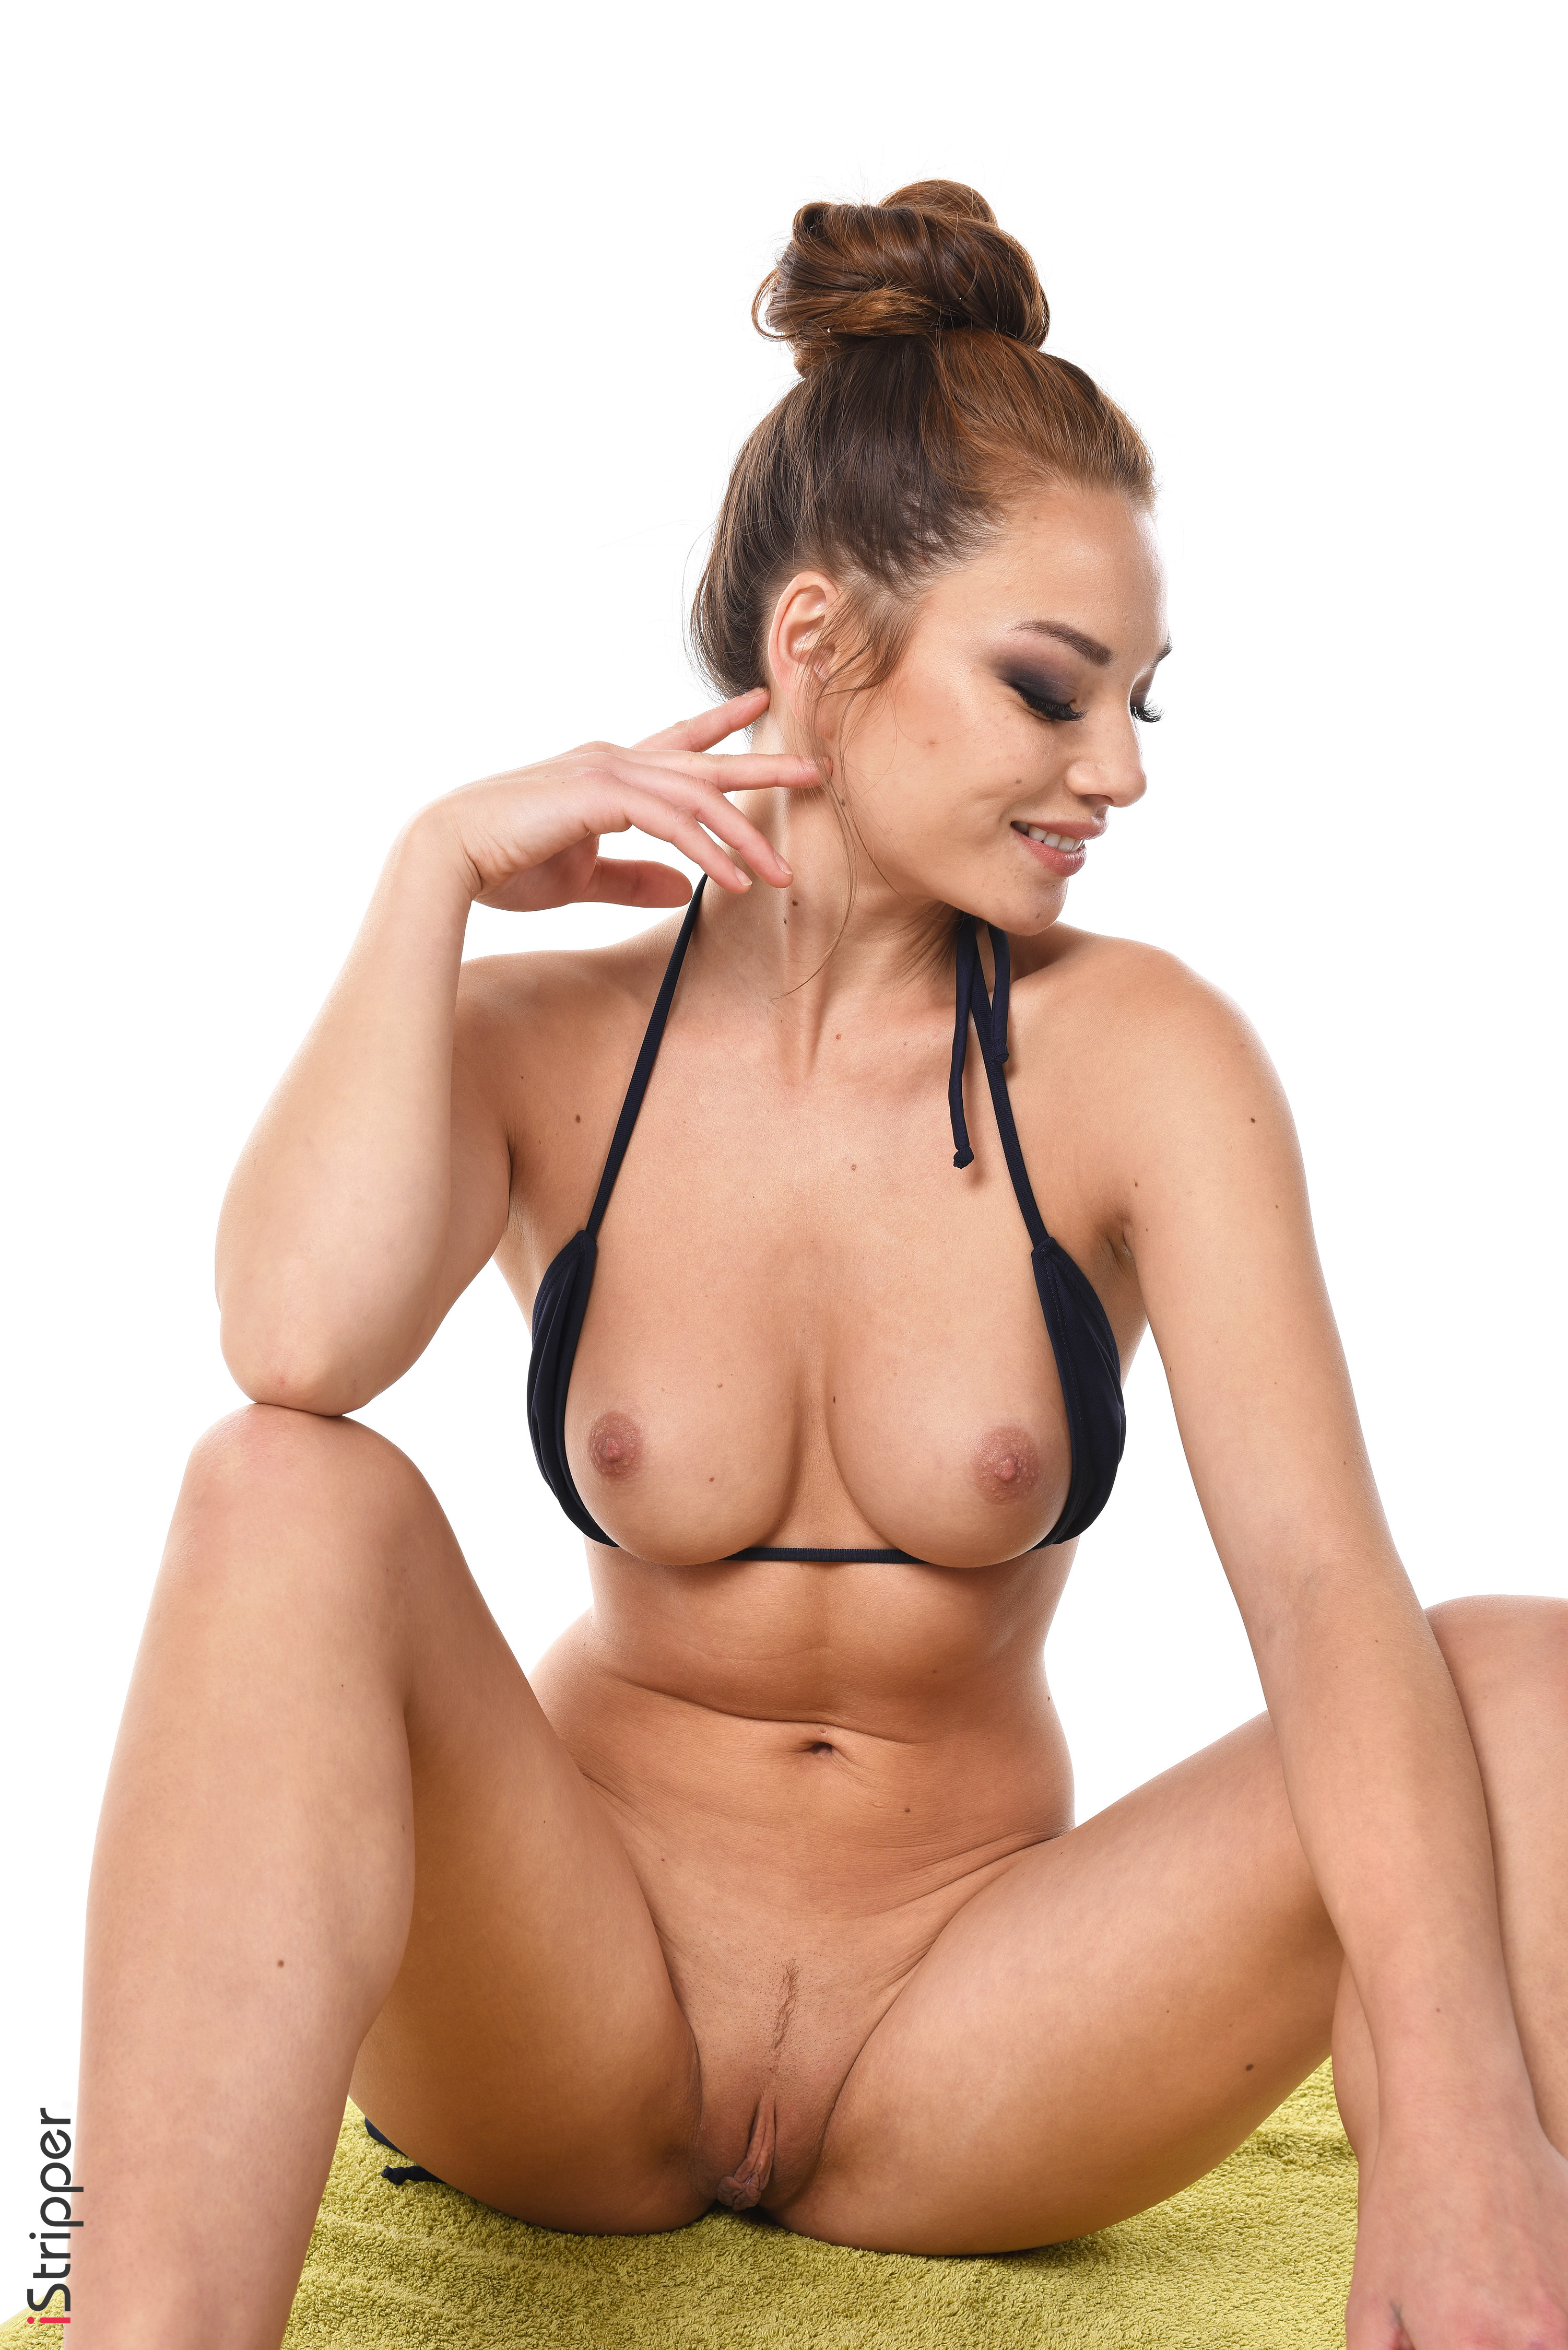 free virtual stripper application for android